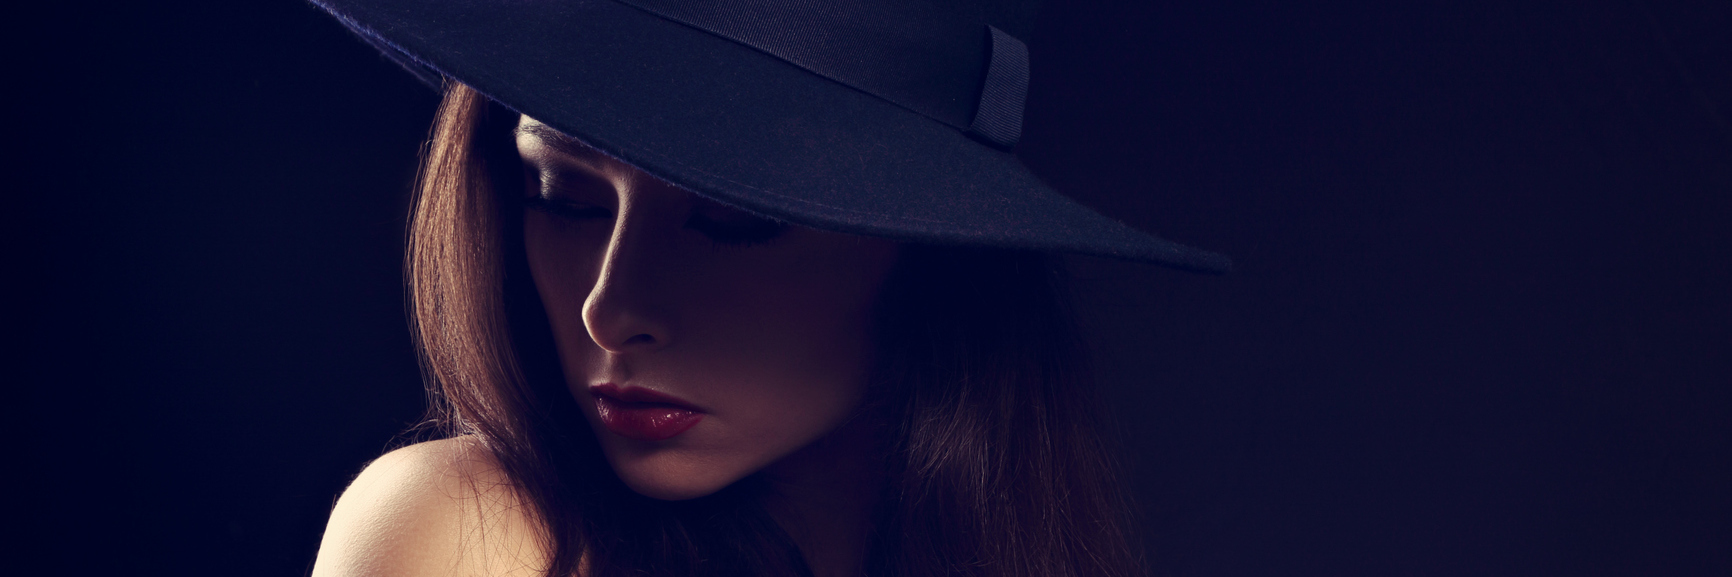 A woman wearing a hat, looking down, while surrounded by darkness.